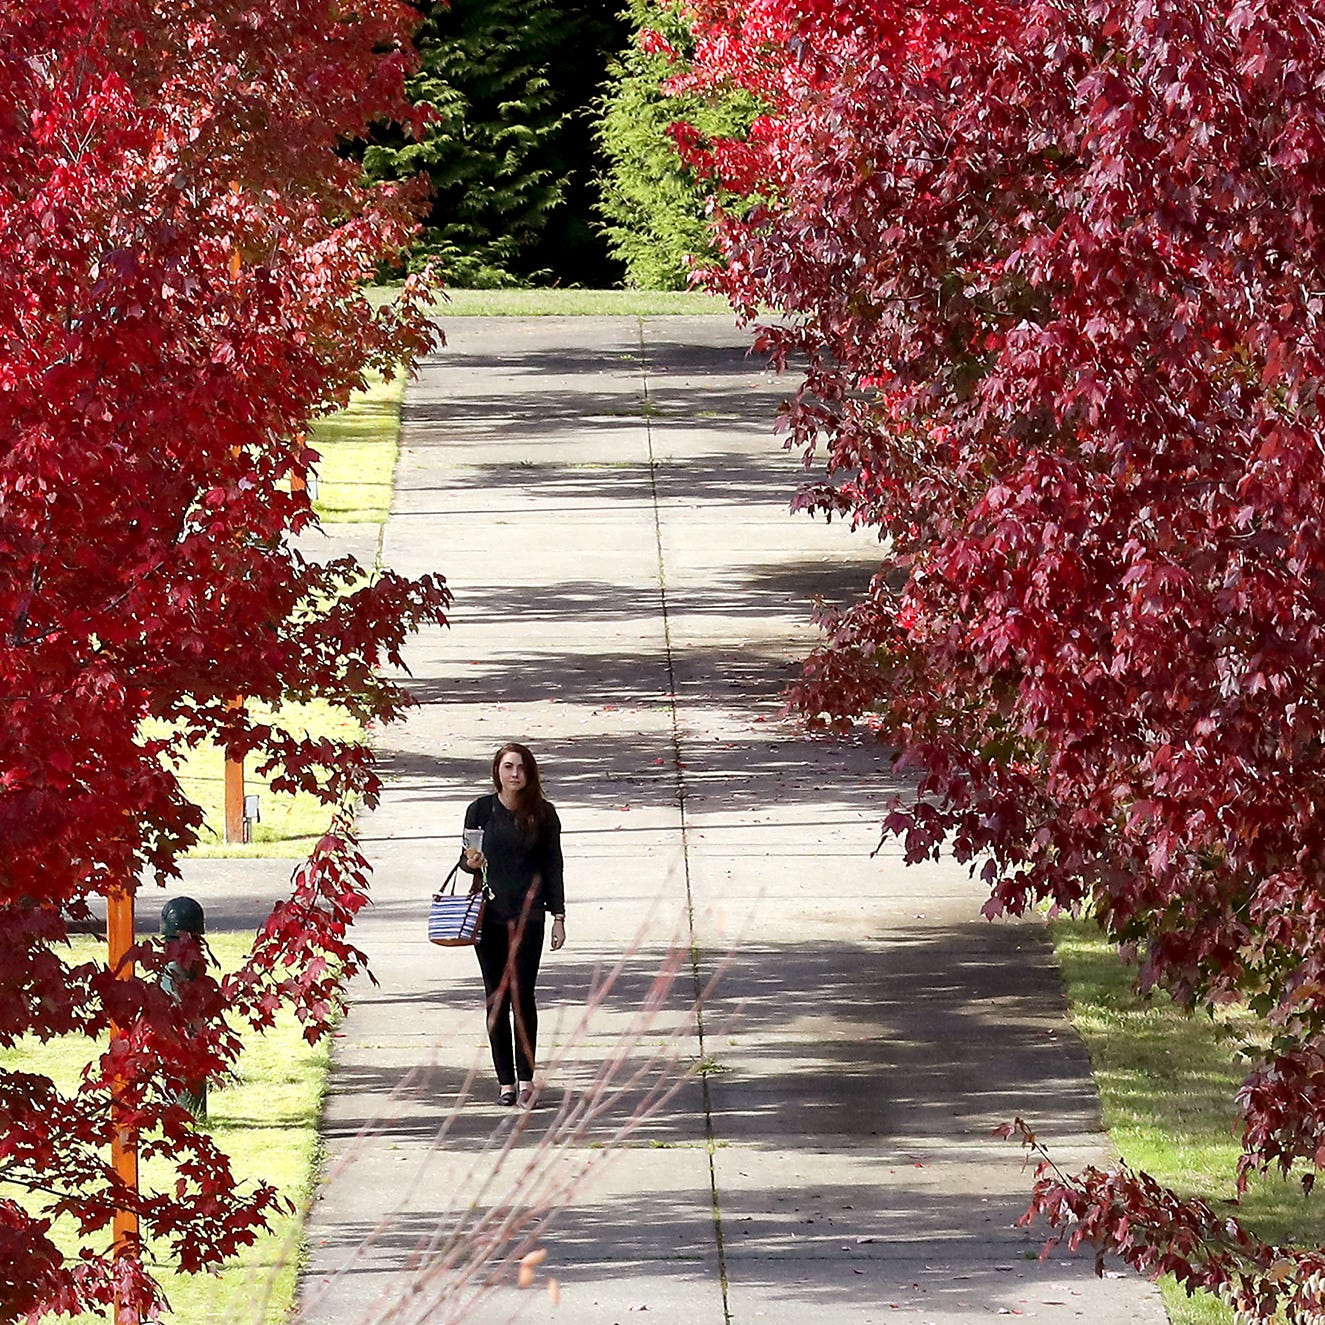 Olympic College students feeling the pinch from delayed GI Bill benefit payments